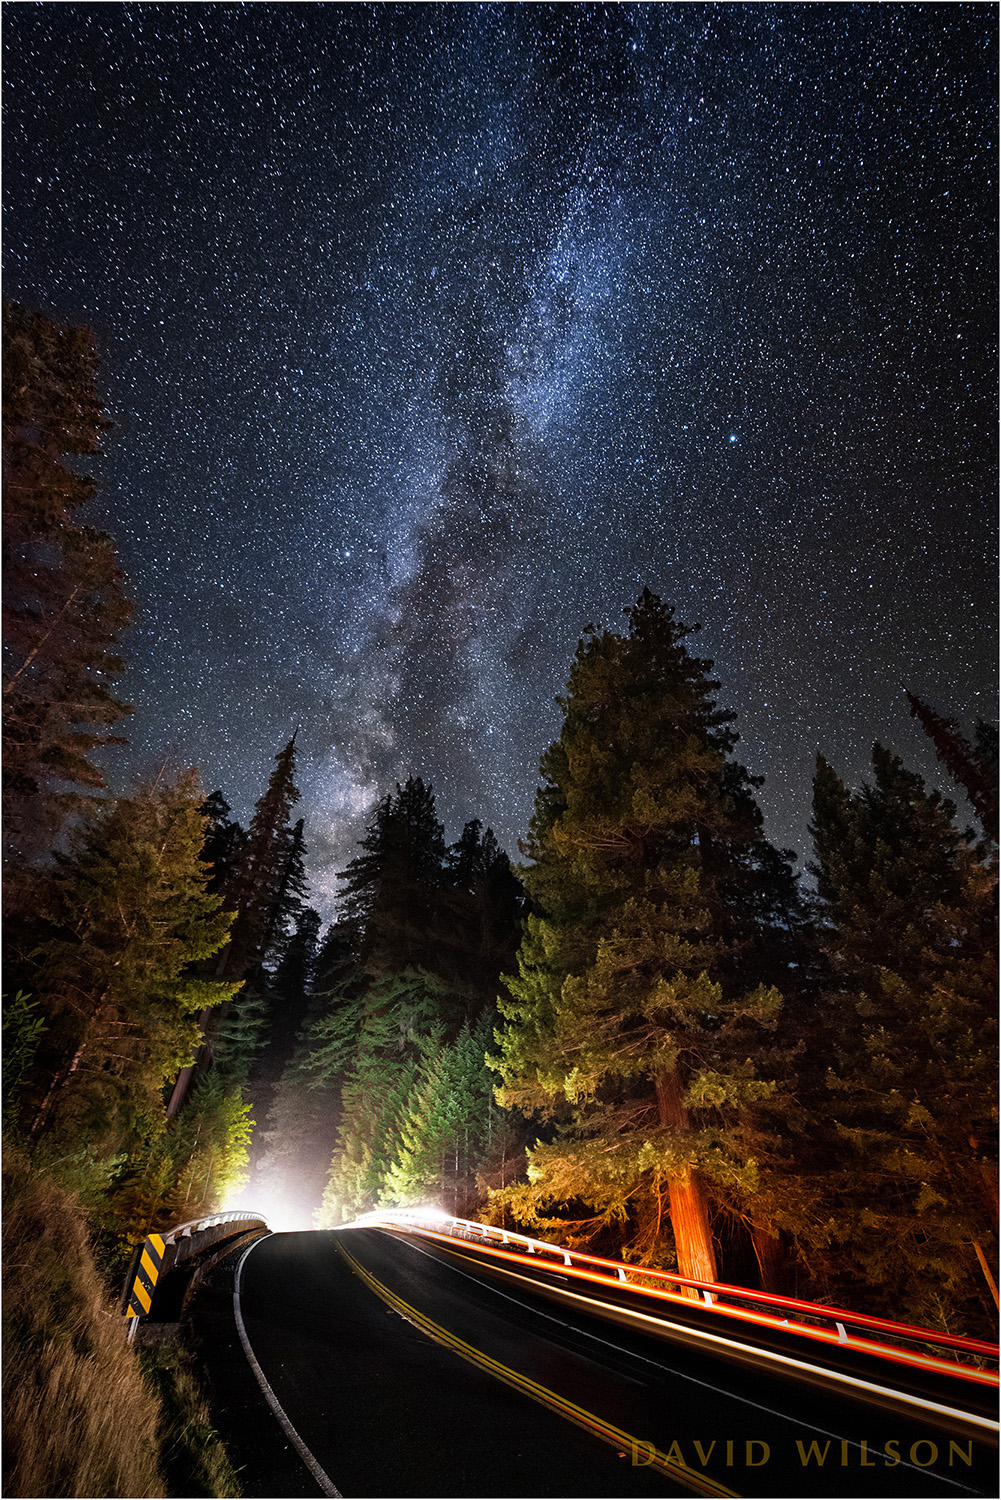 Avenue of the Giants and Milky Way